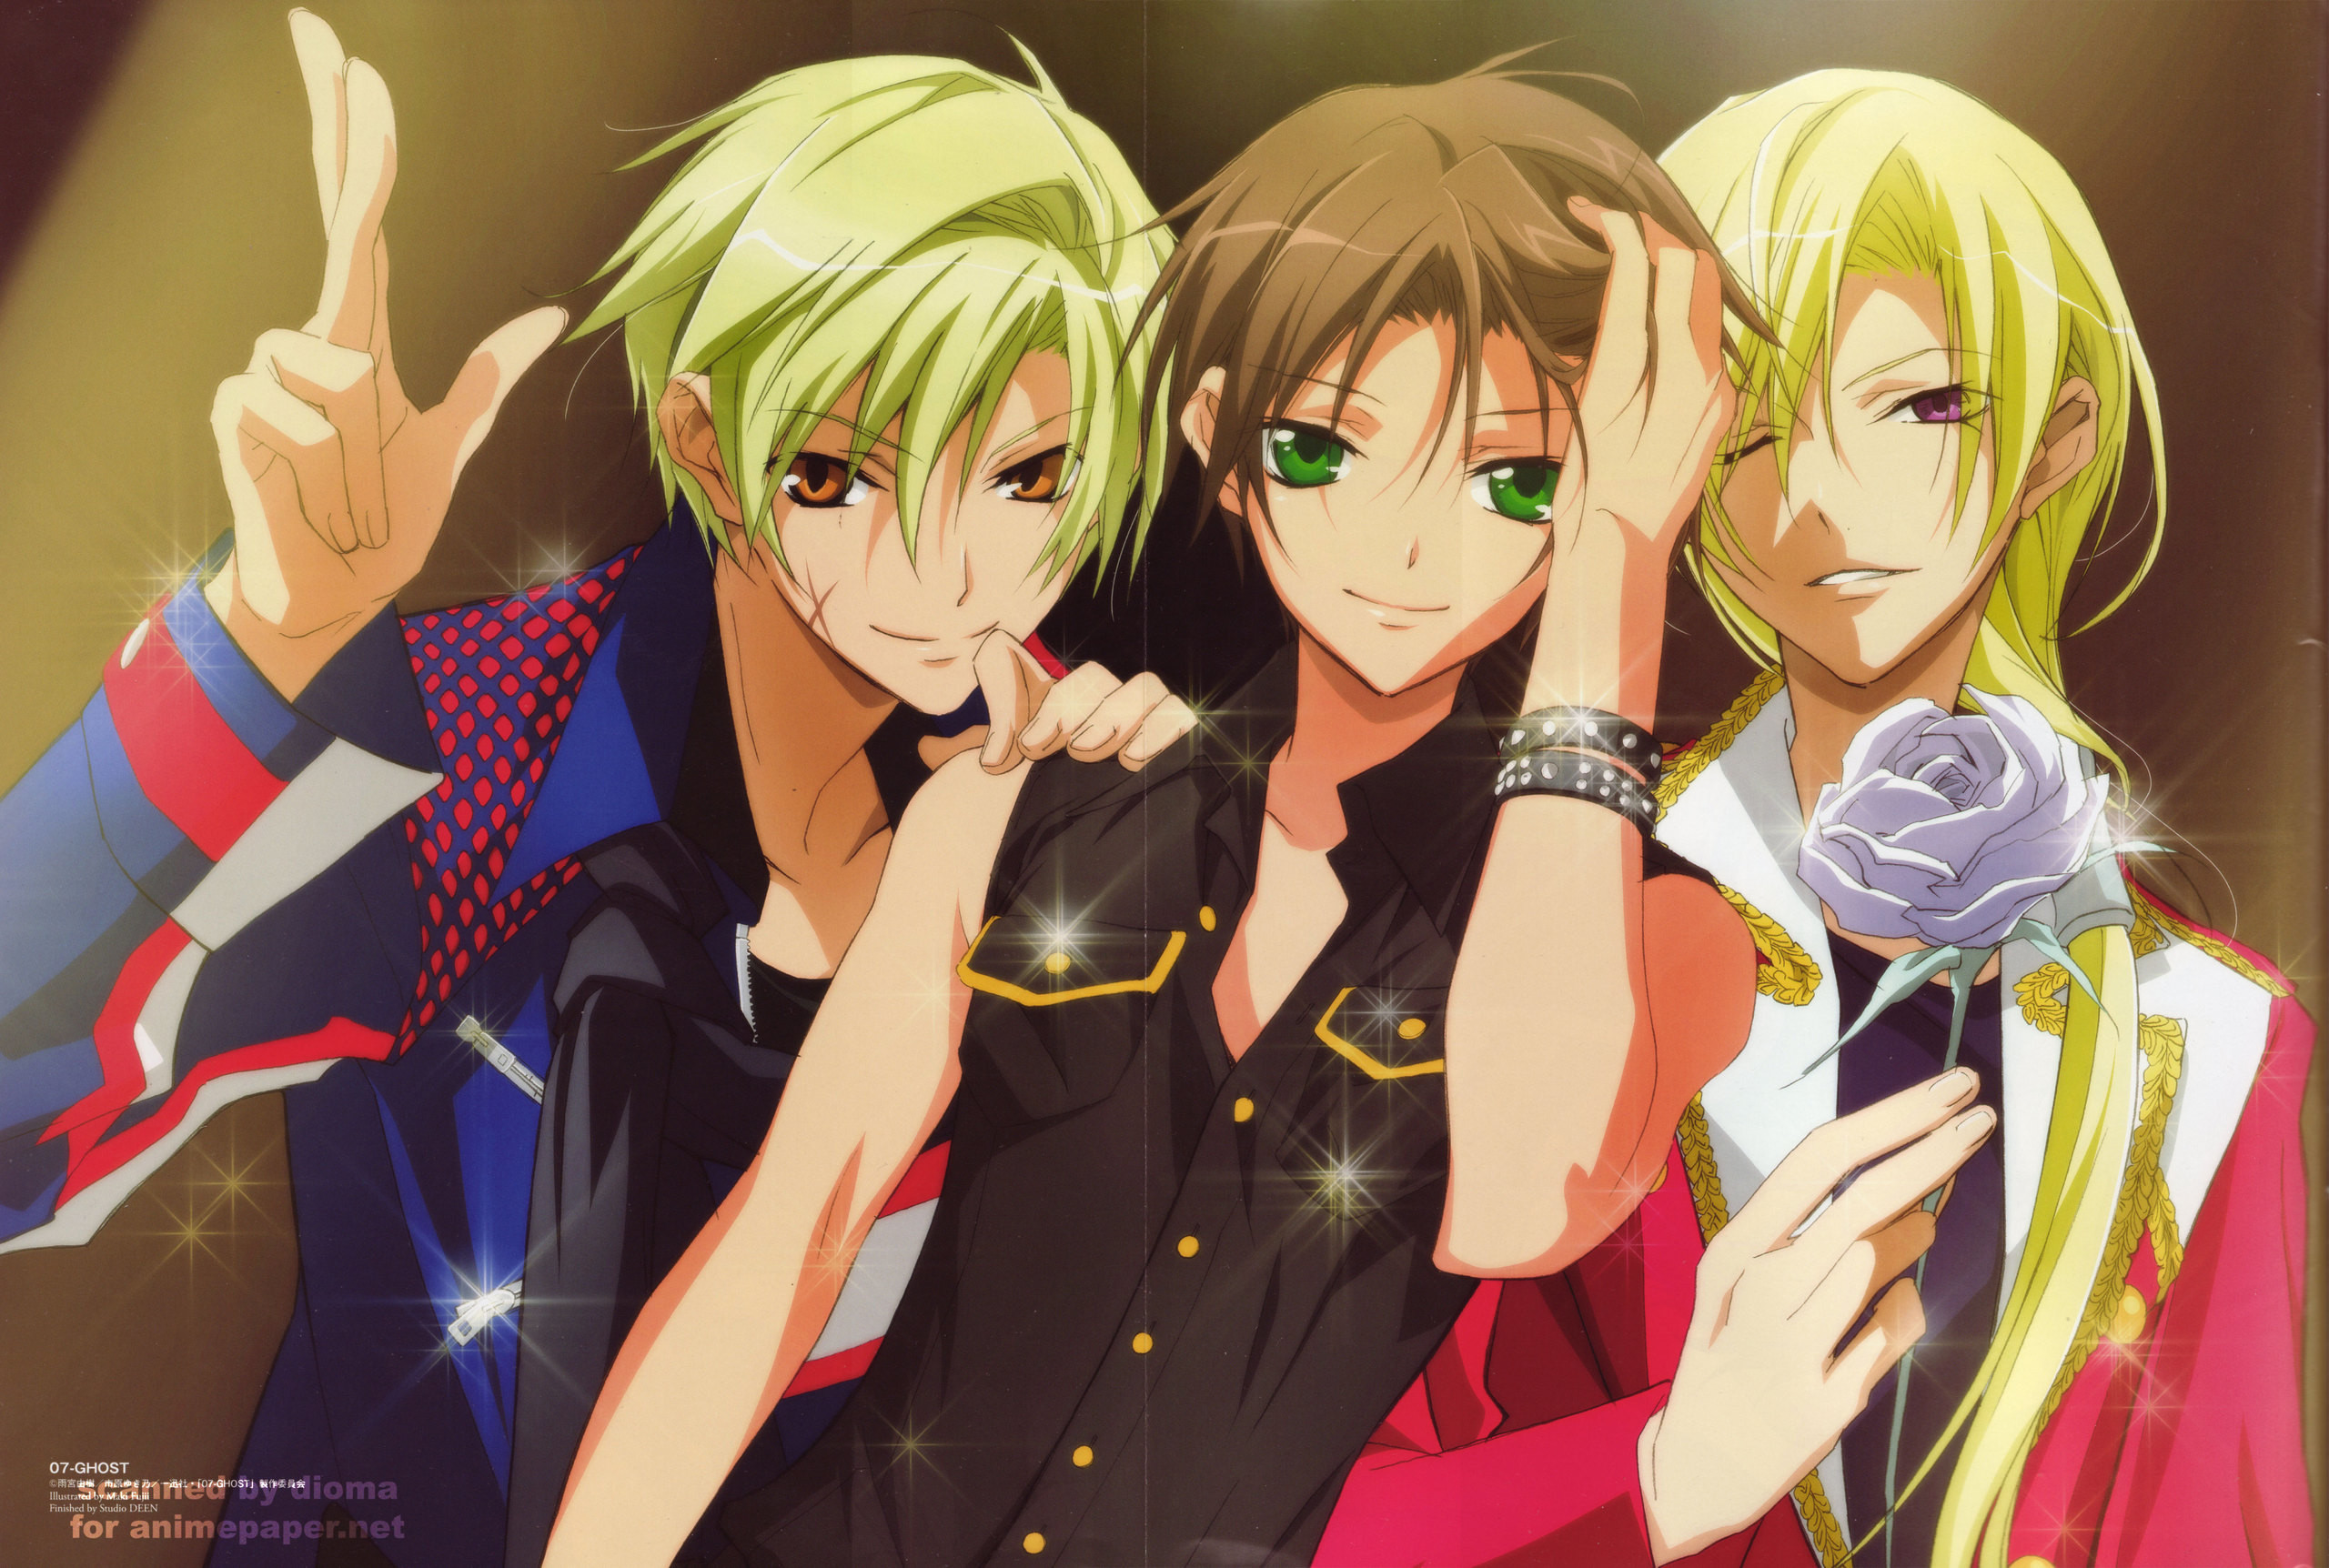 Res: 2560x1724, Bishonen images 07-Ghost bishies HD wallpaper and background photos